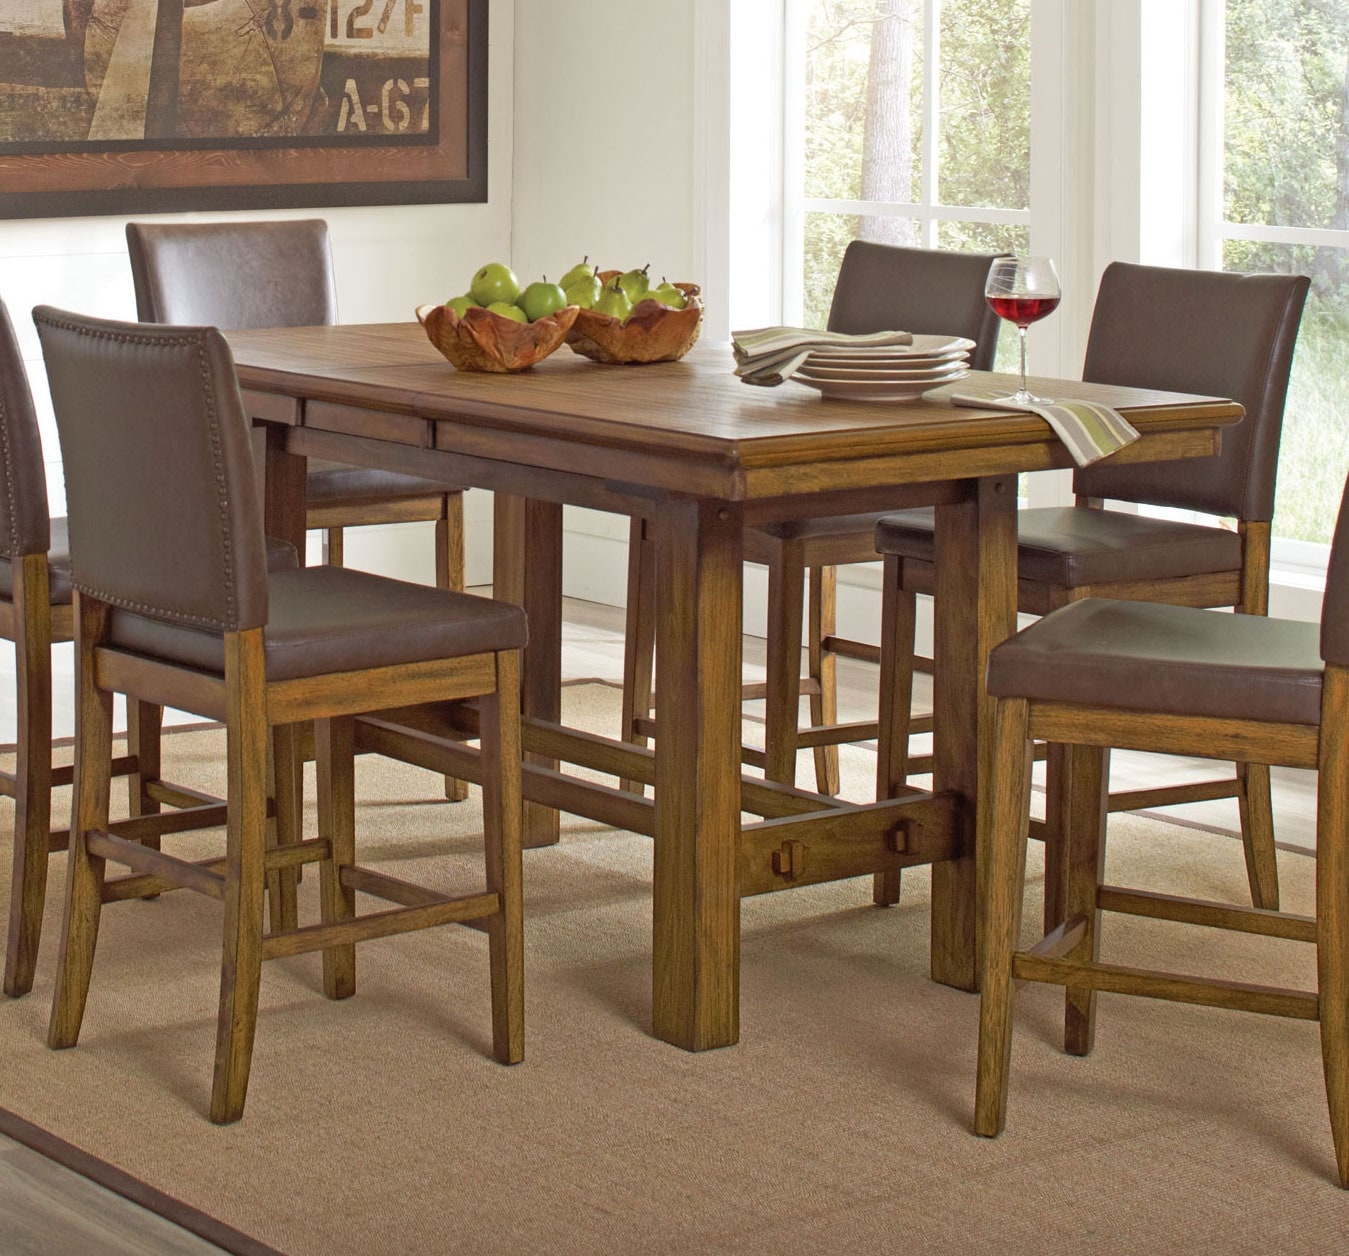 Dining Room Furniture - Aiko 5-Piece Counter-Height Dining Package